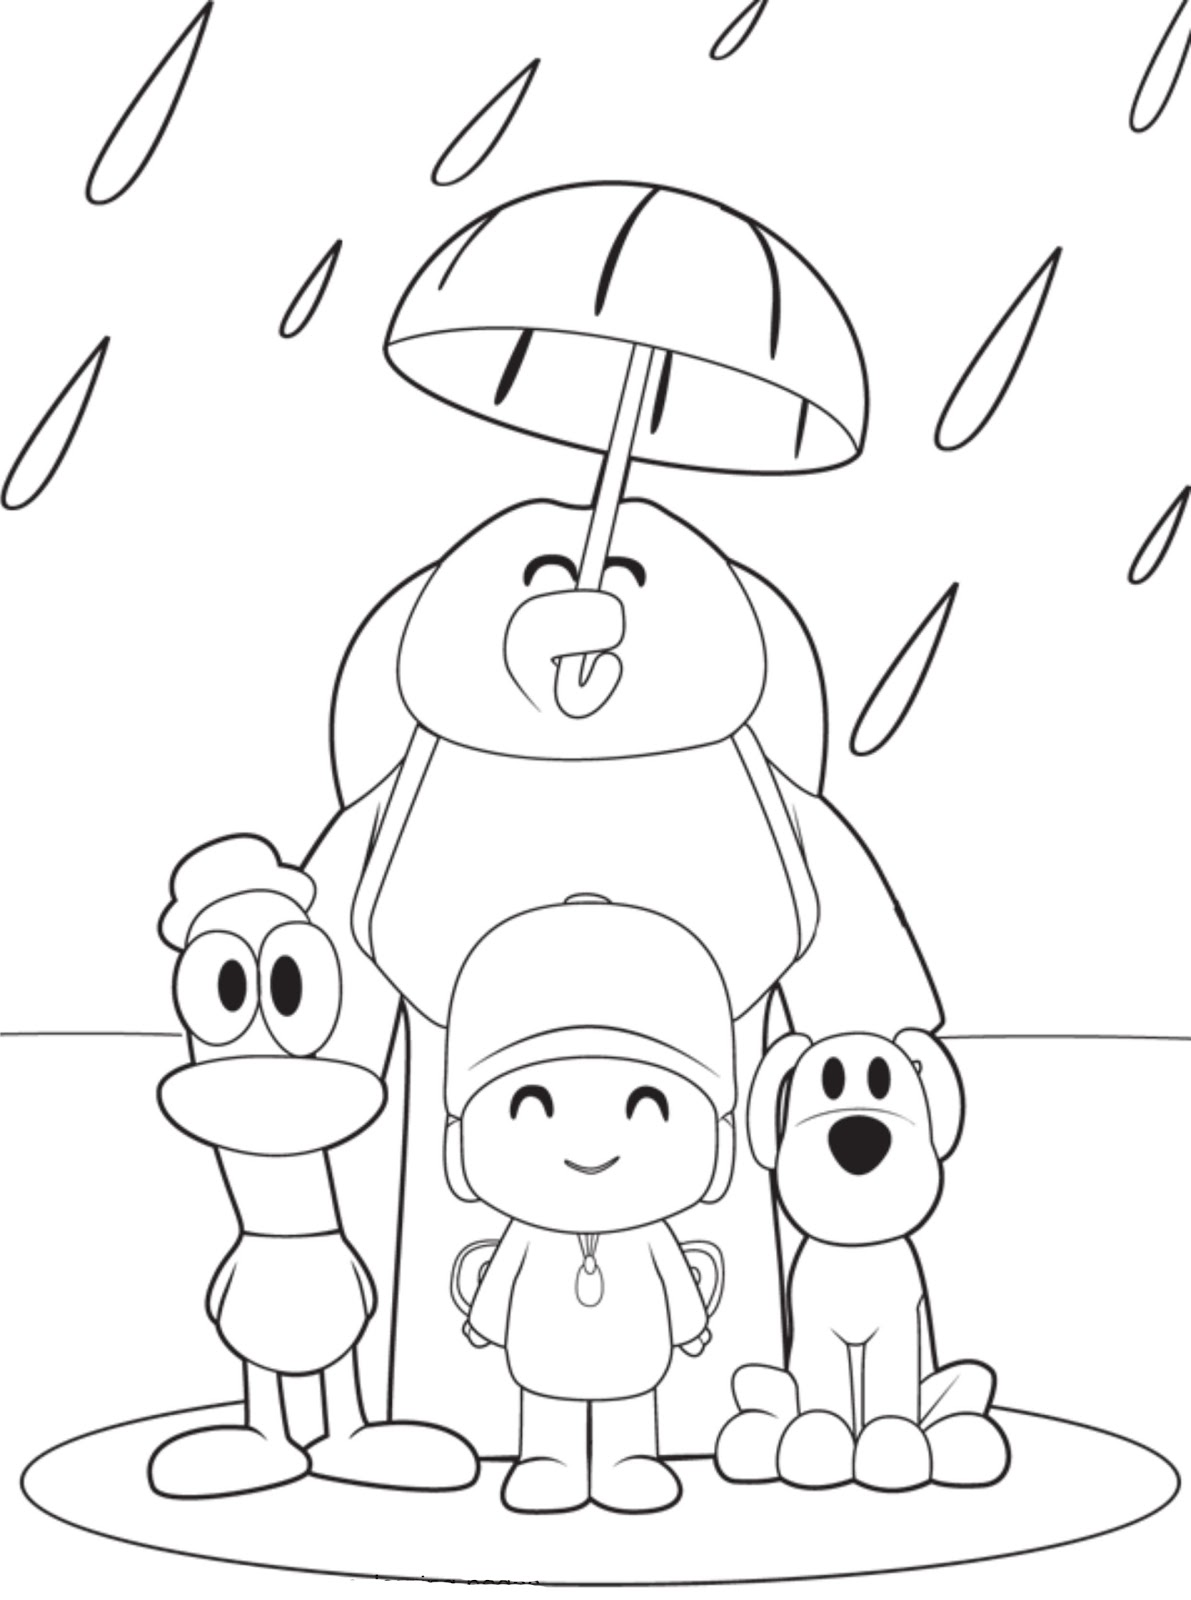 Pocoyo Coloring Pages Free Printable Coloring Pages